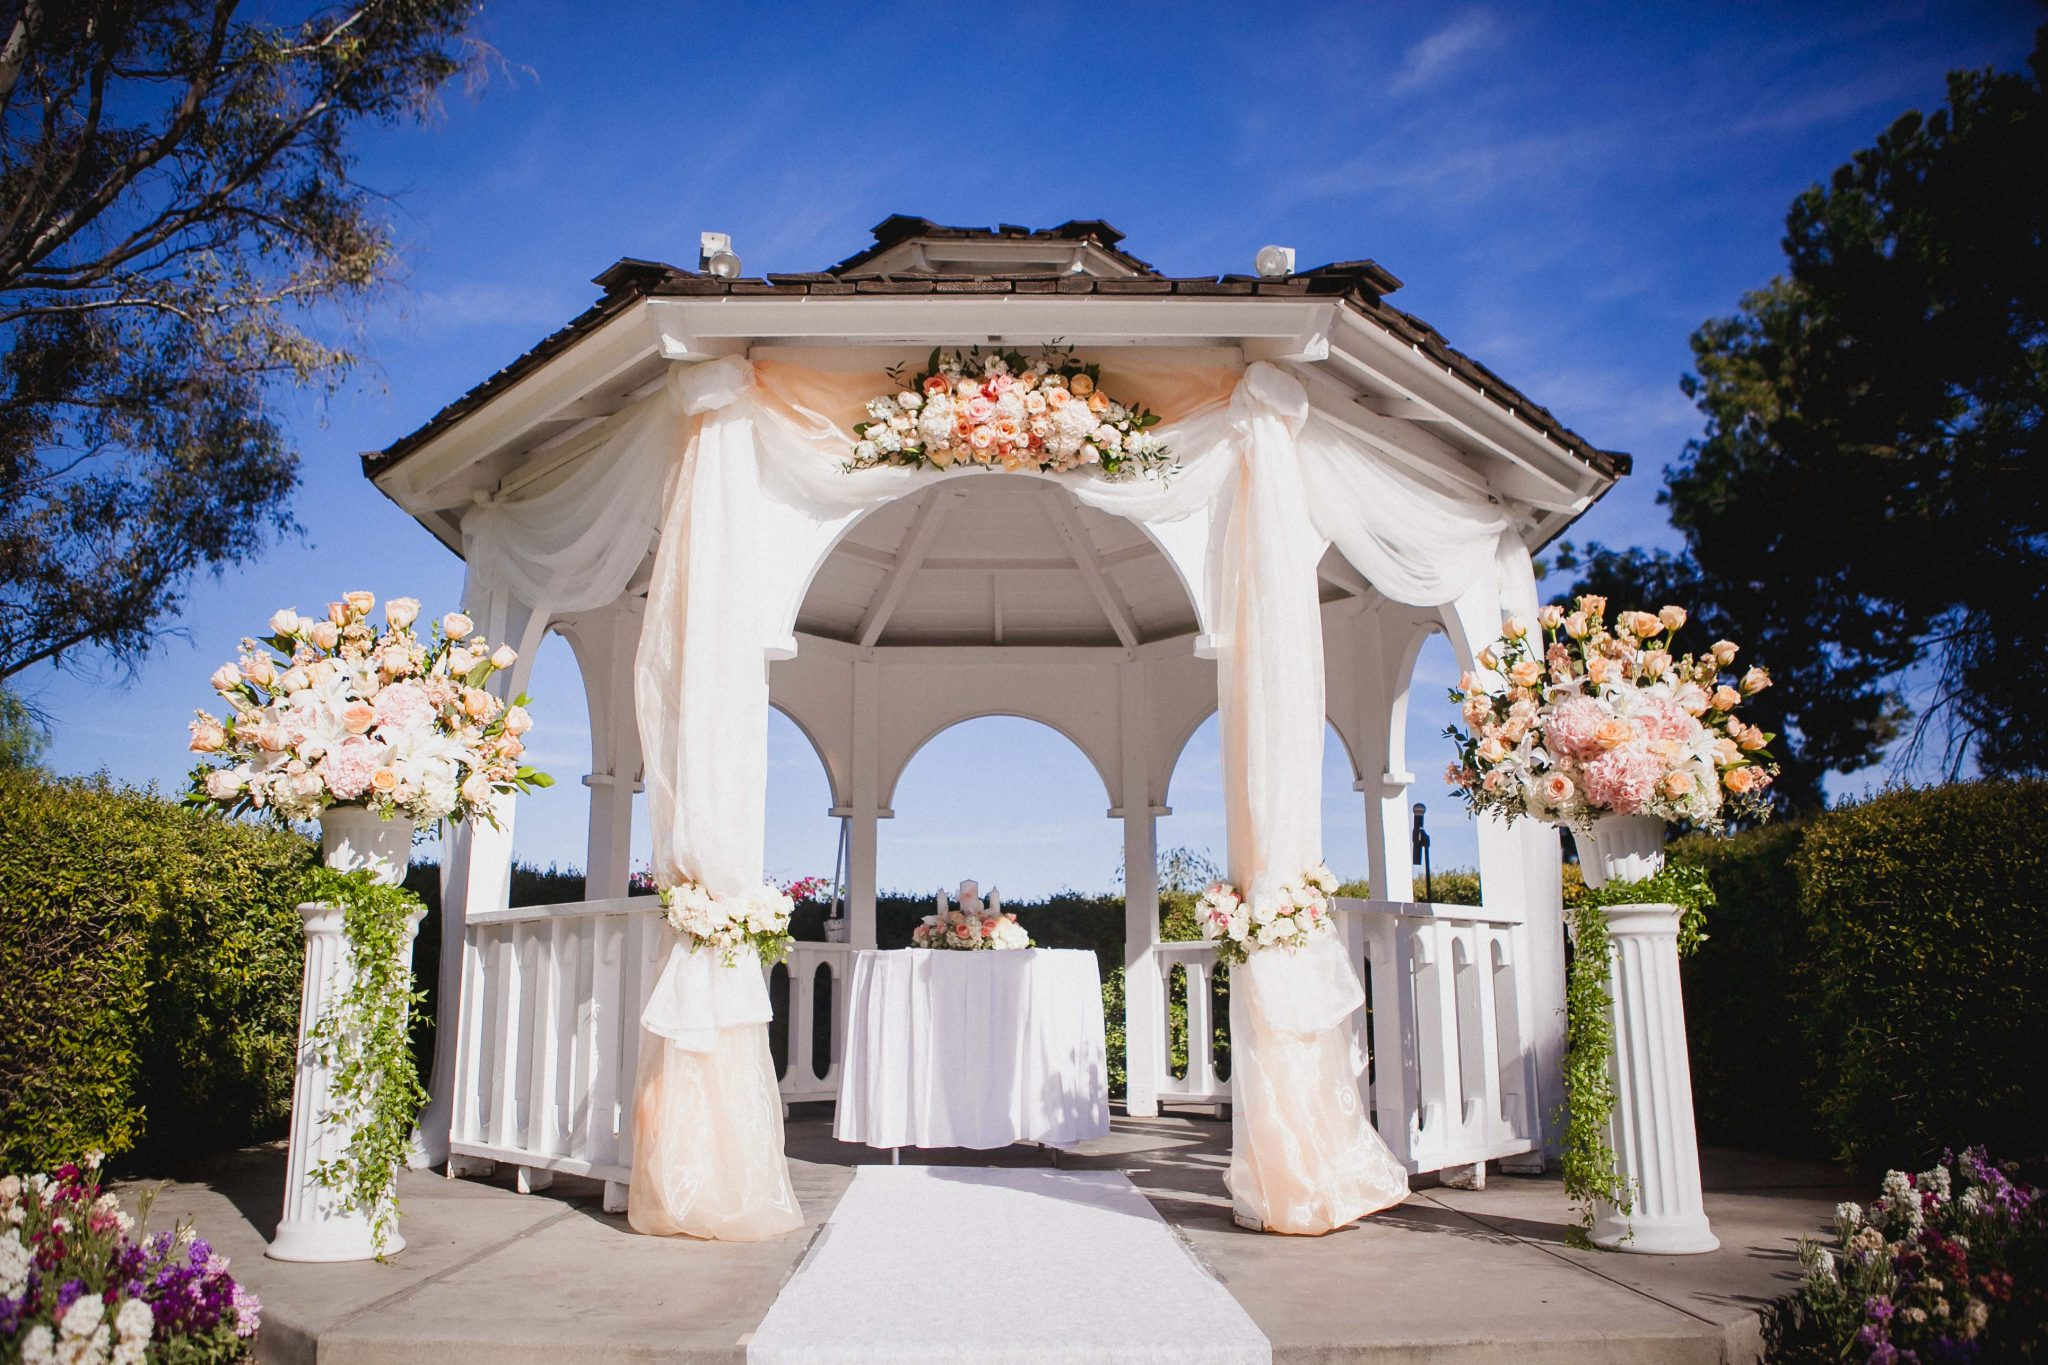 Outdoor wedding ceremony detail photo of the altar under a gazebo with white and pink roses